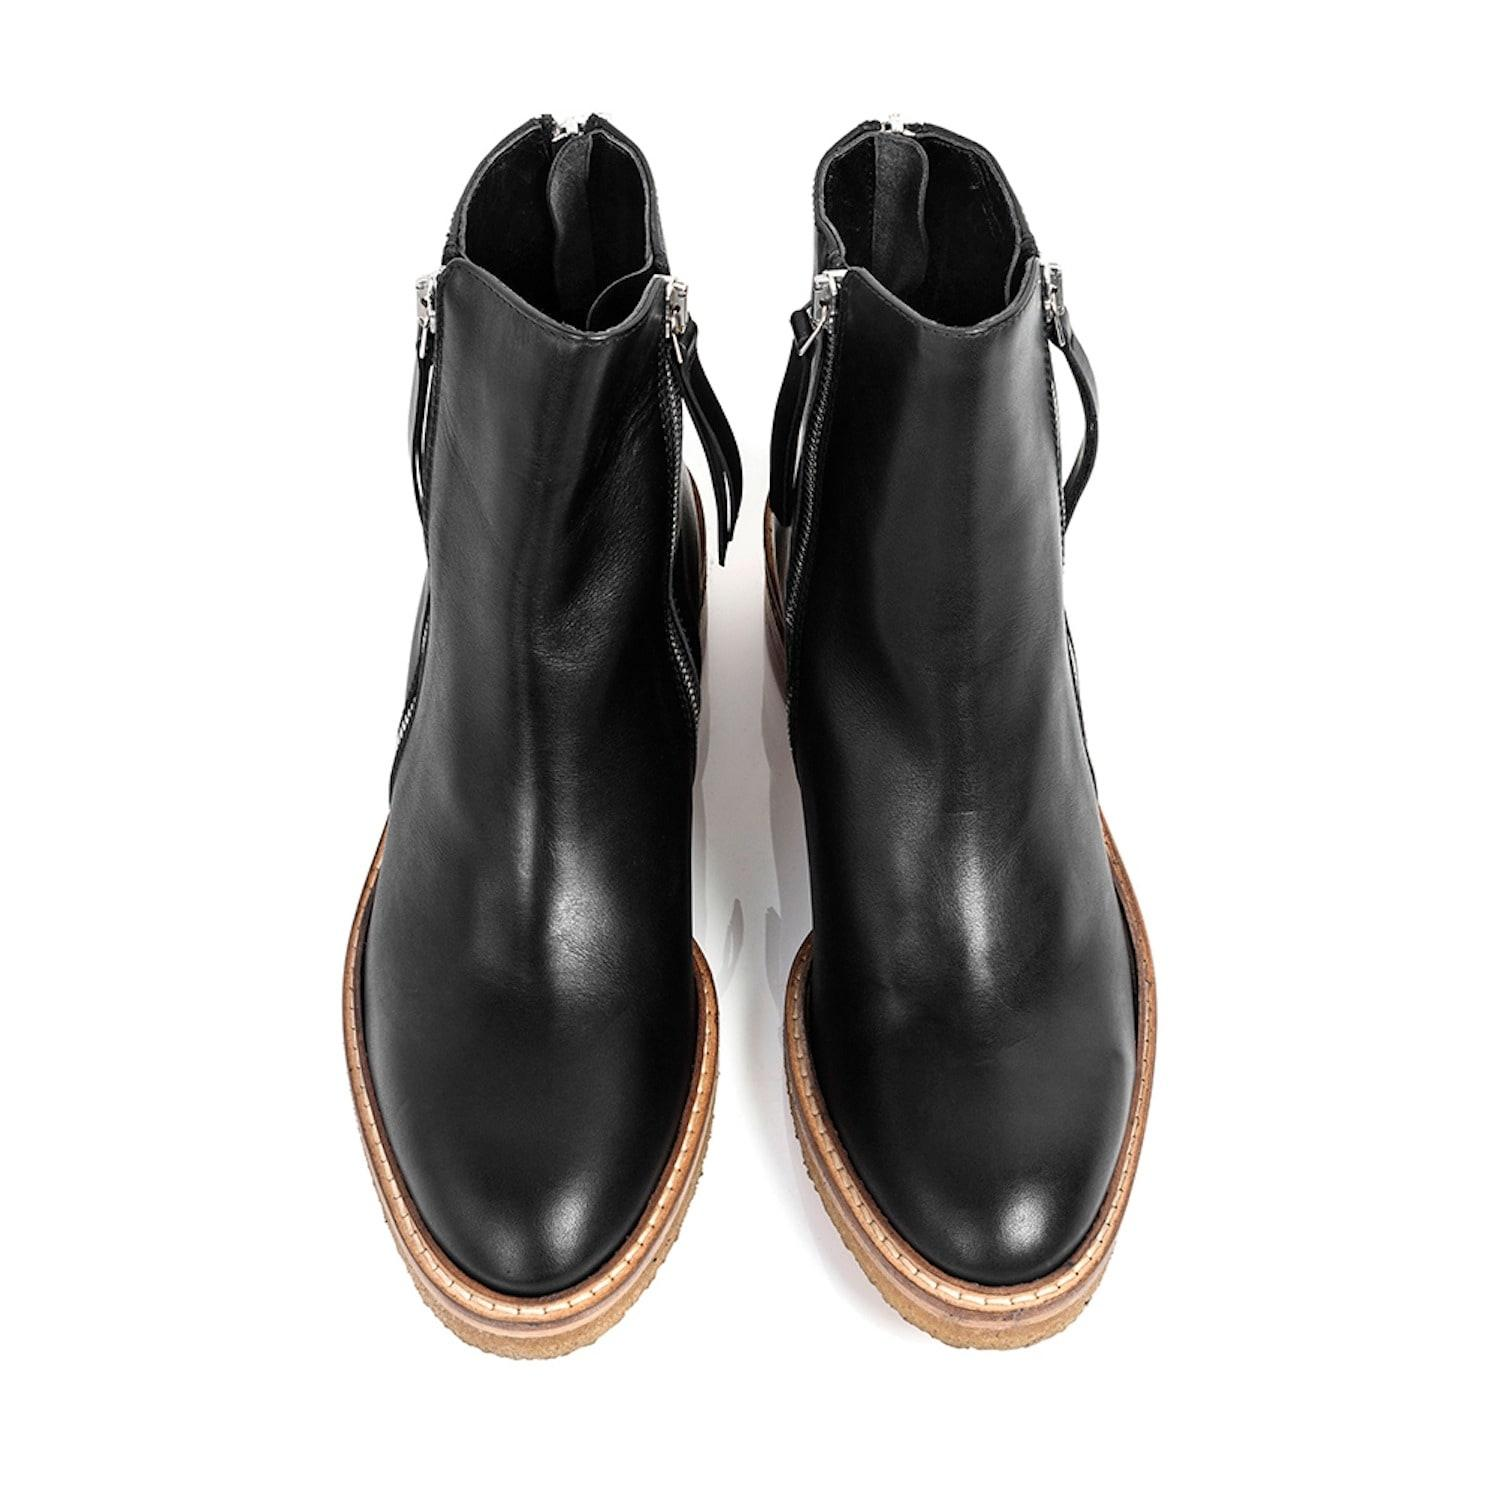 How To Prevent Leather Shoes From Cracking